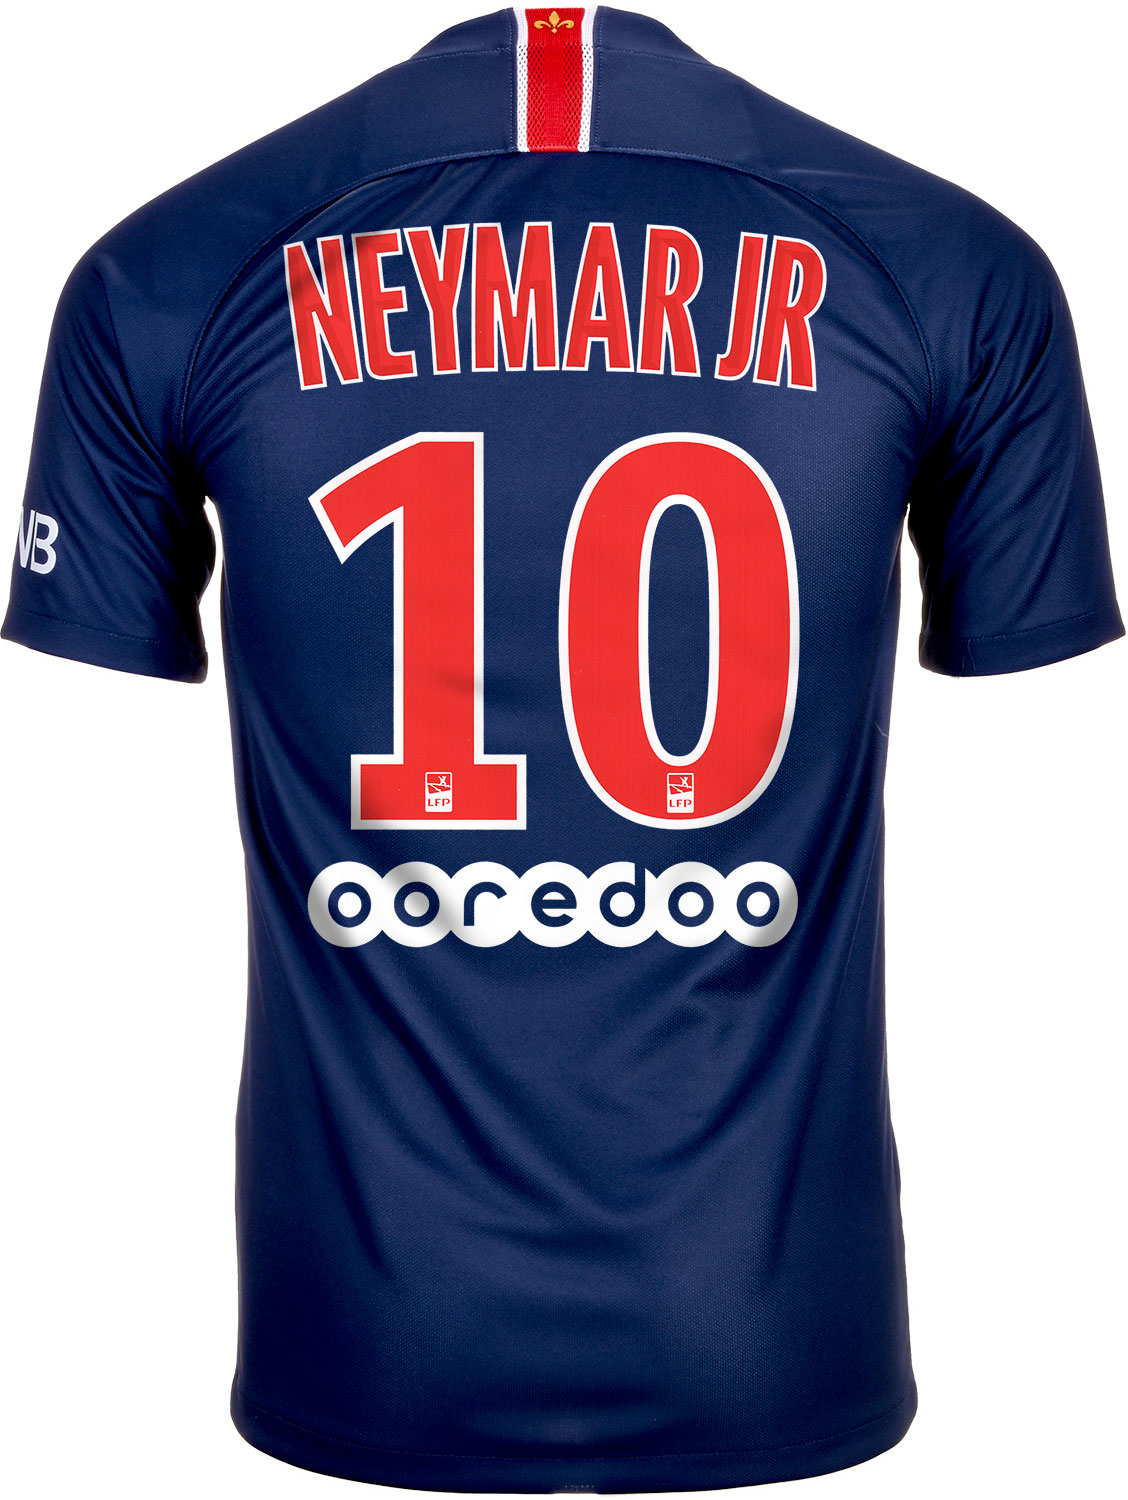 nike neymar jr psg home jersey 2018 19 soccerpro. Black Bedroom Furniture Sets. Home Design Ideas